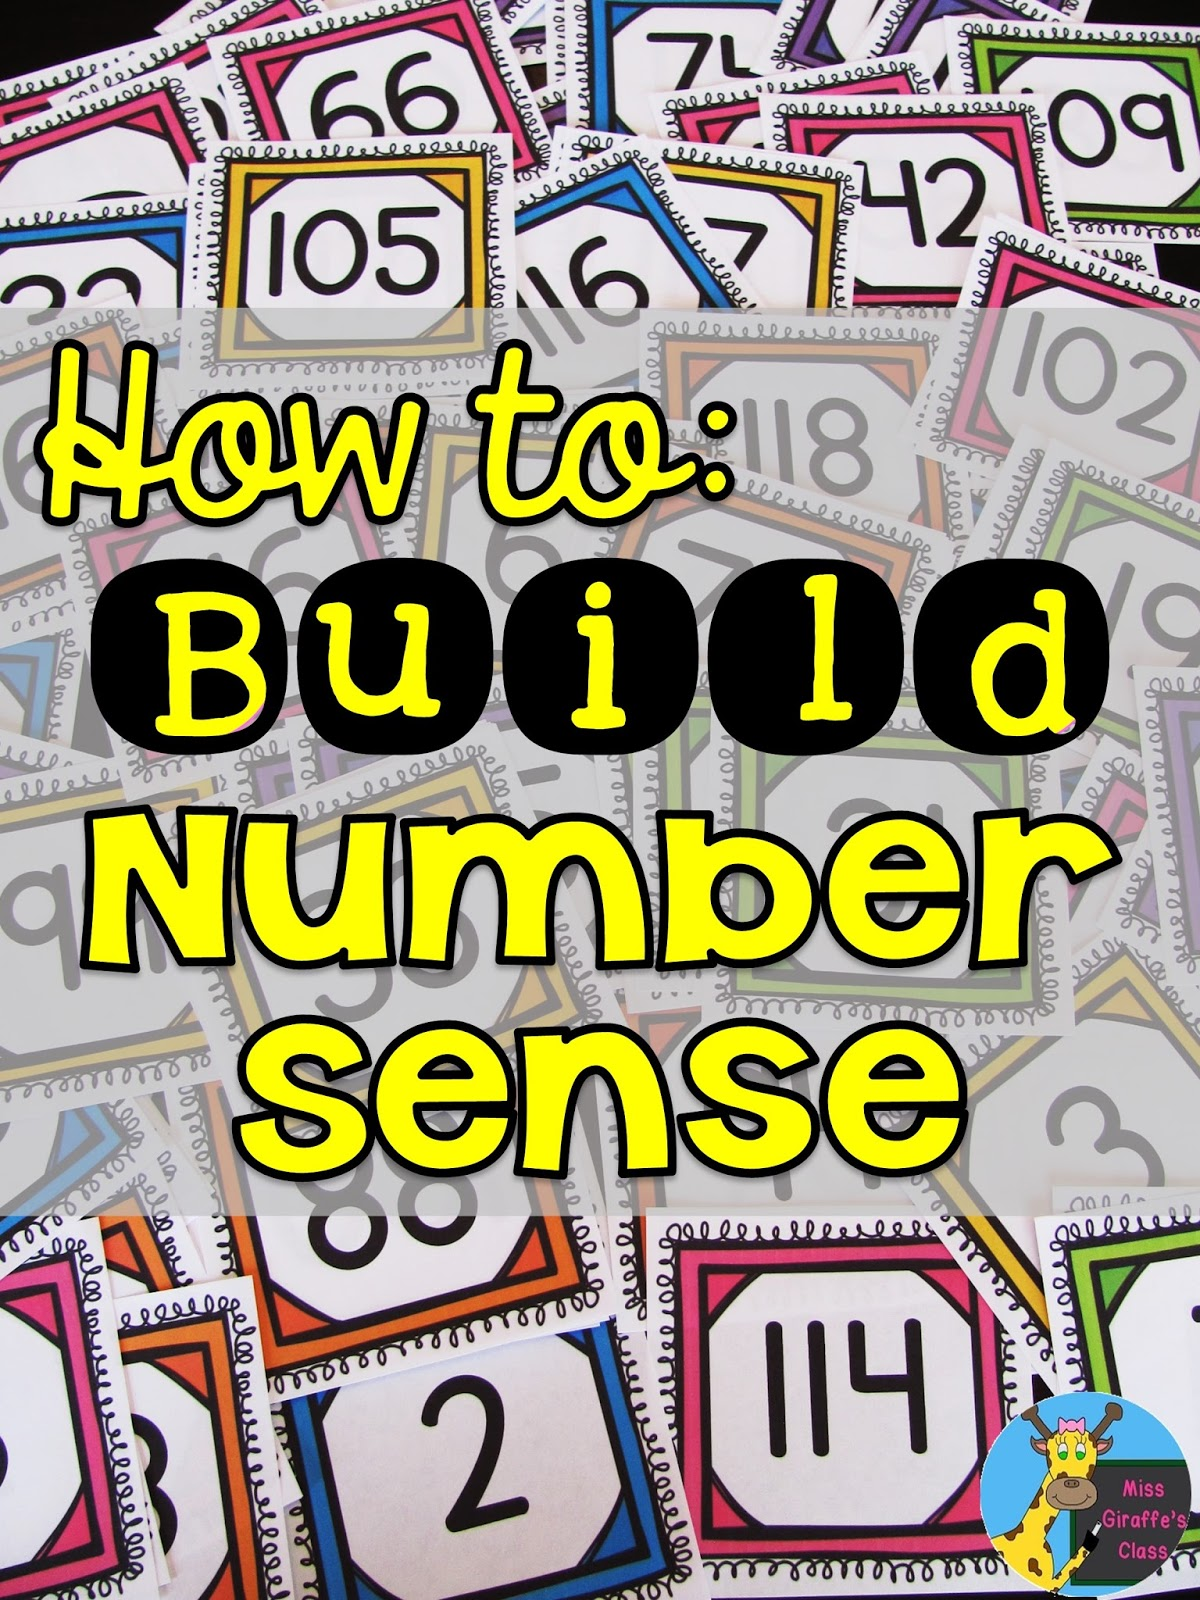 Miss Giraffes Class Building Number Sense in First Grade – Number Sense Worksheets